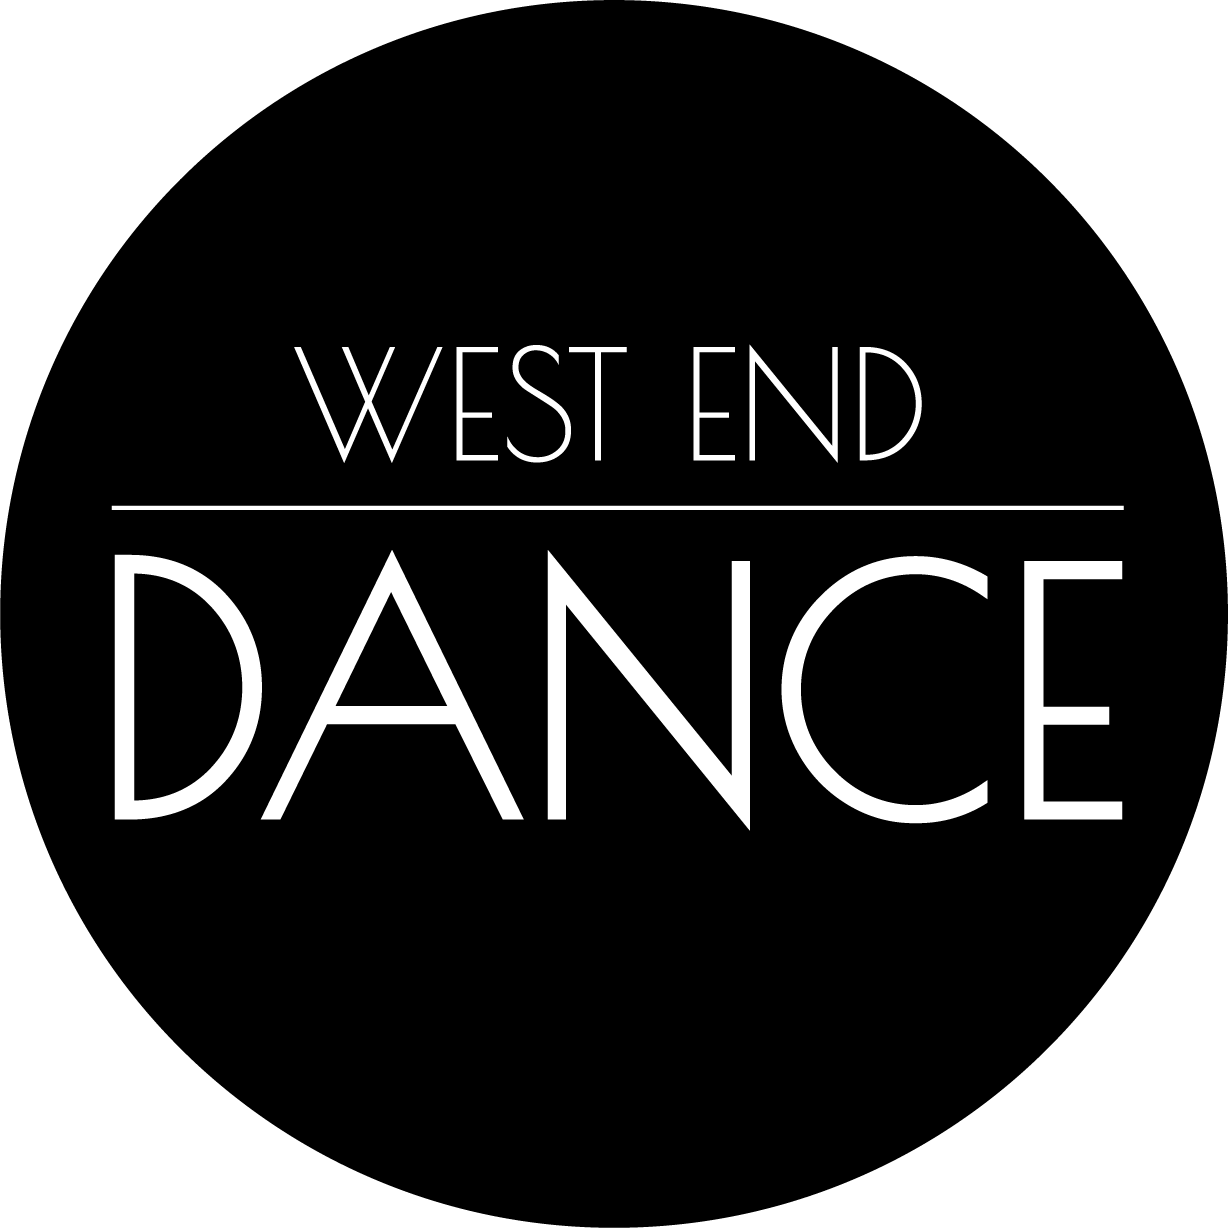 West End Dance